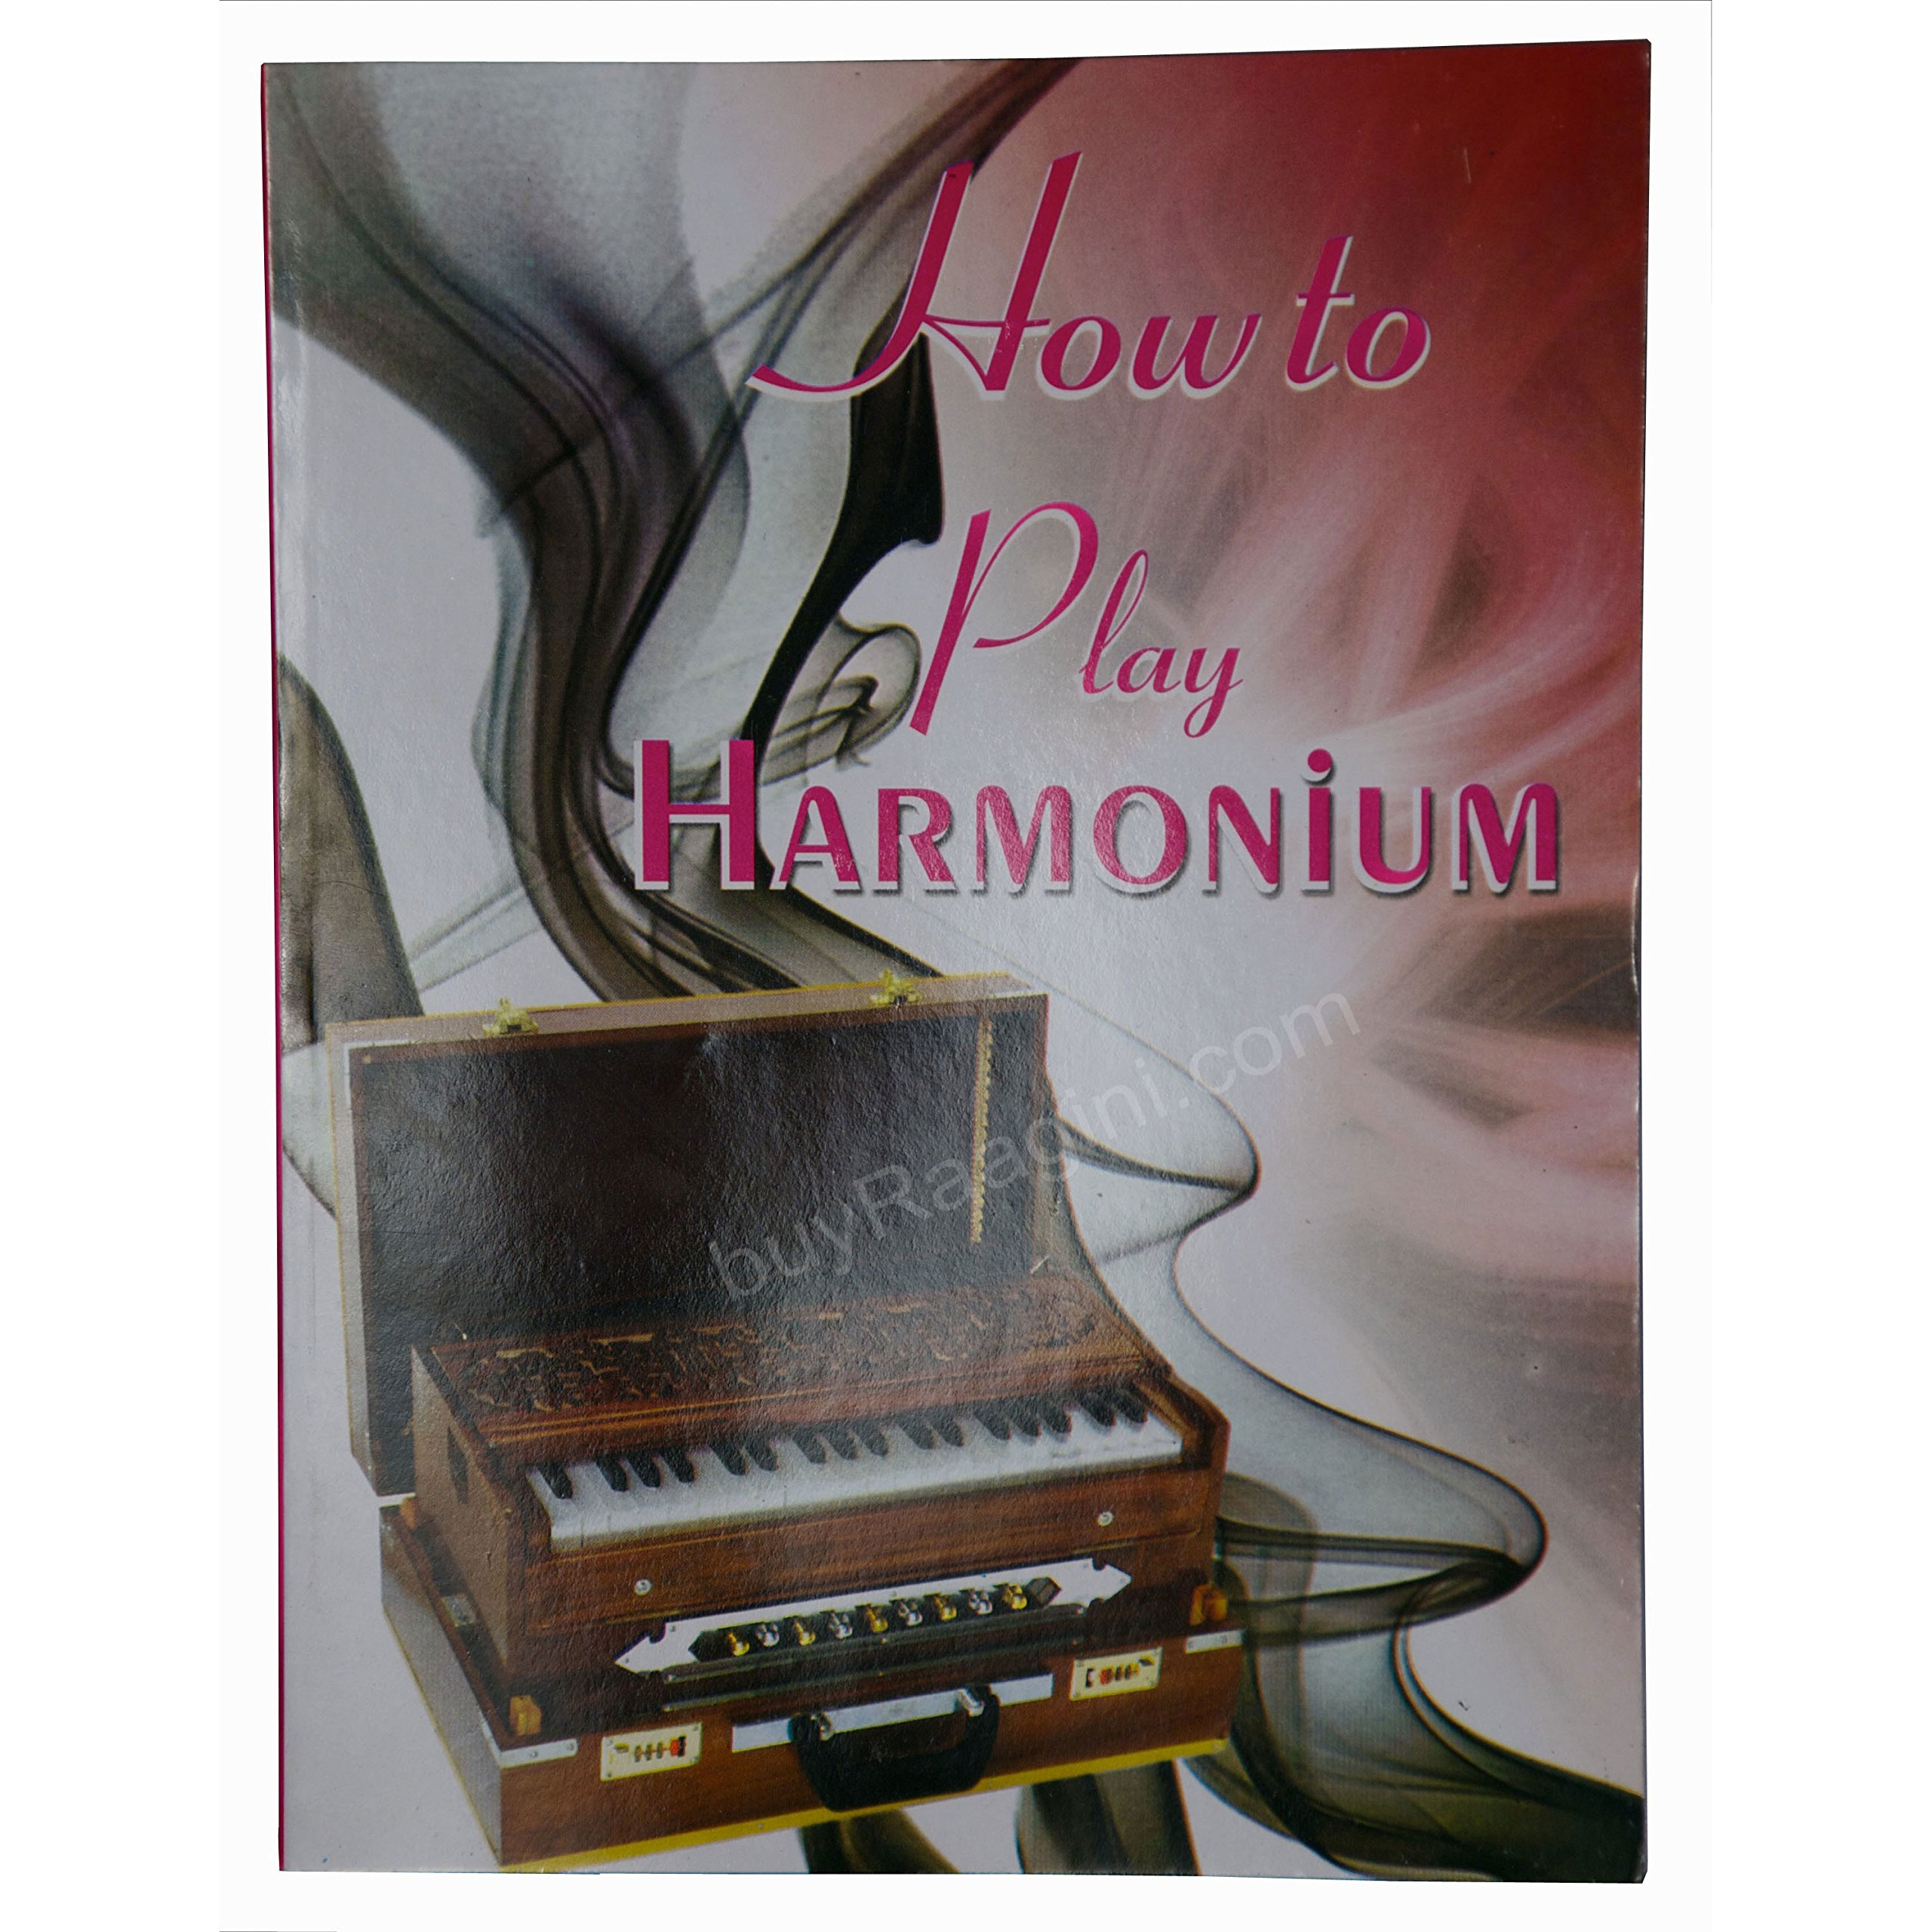 Harmonium, Maharaja Musicals, Scale Changer, In USA, Folding, 13 Scales, 4 Reeds, Dark Color, Tuned To A440, Teak Wood, Padded Bag, Book, Musical Instrument Calcutta India (PDI-BDF) by Maharaja Musicals